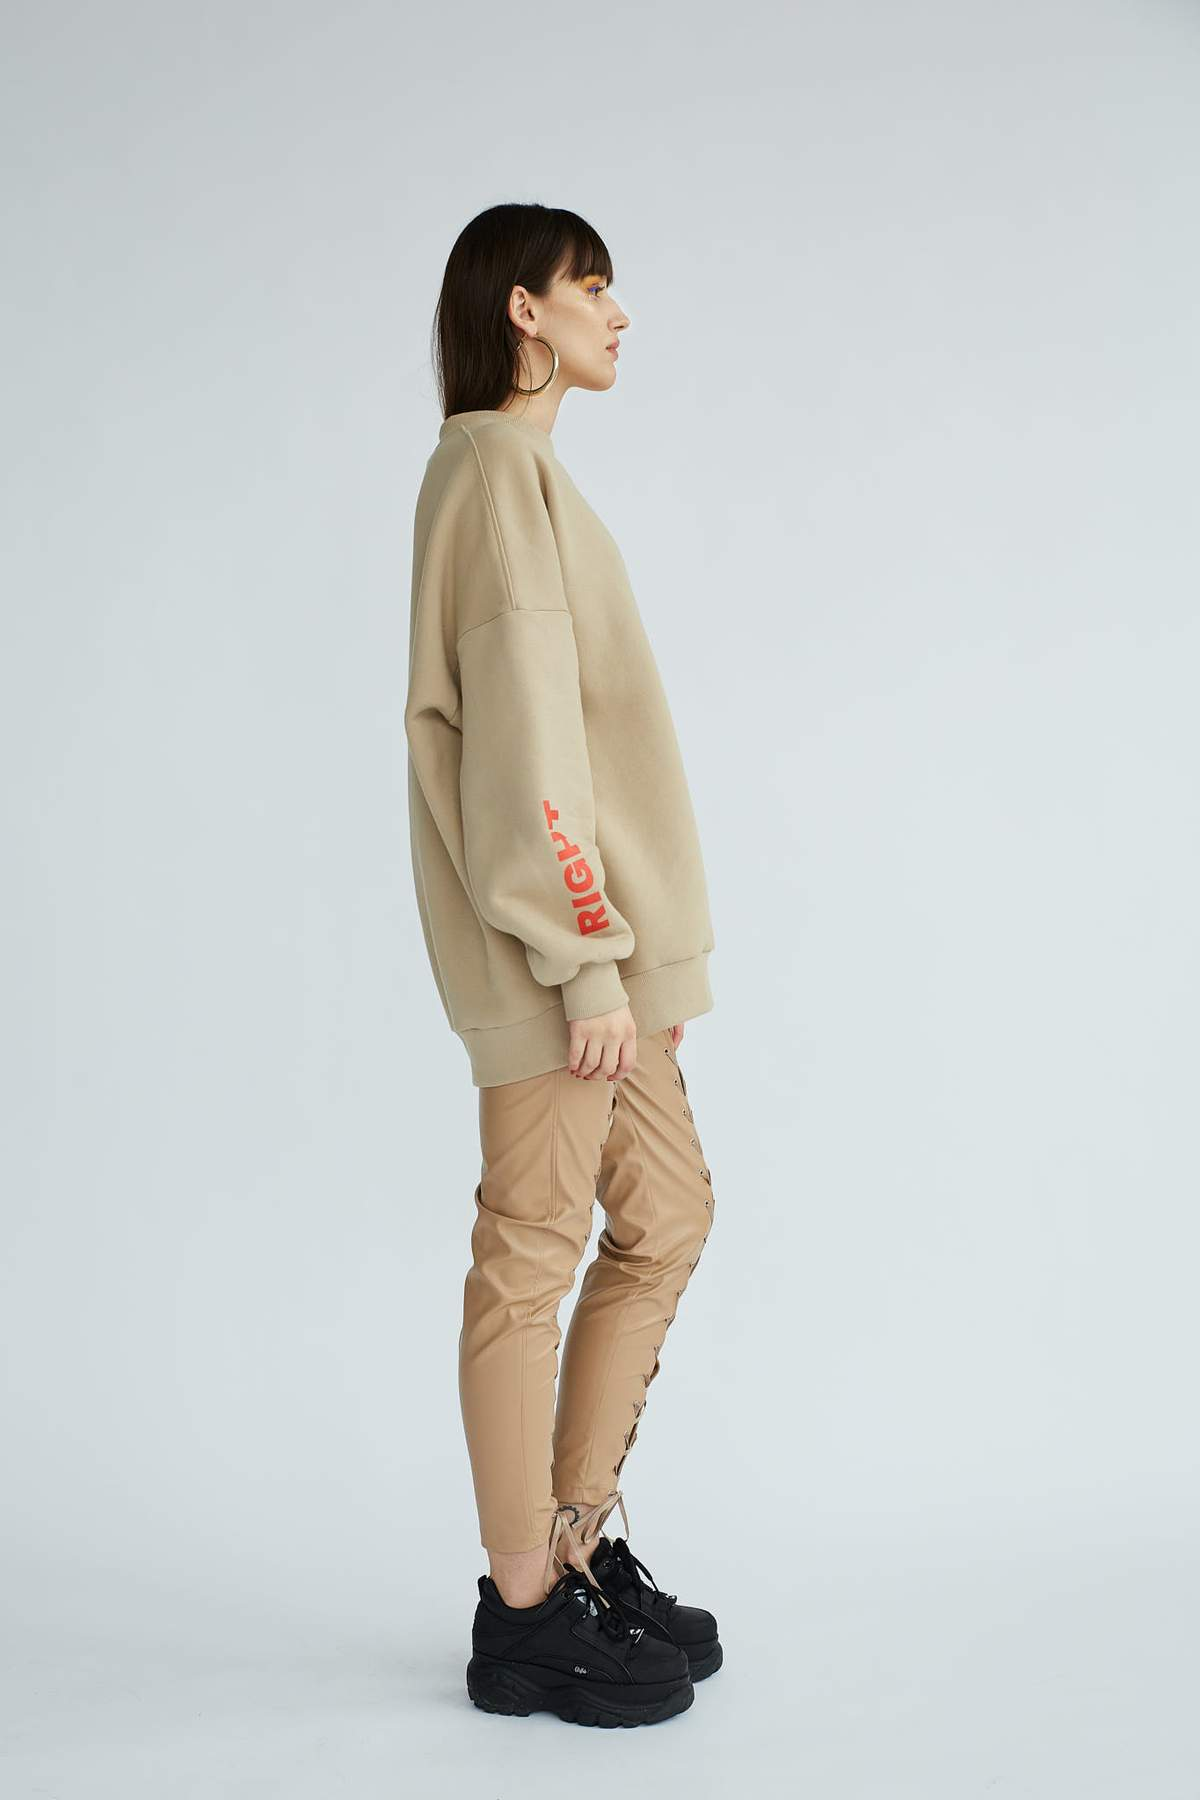 Le SLAP | SECRET LOVER Nude lace-up skinny pants